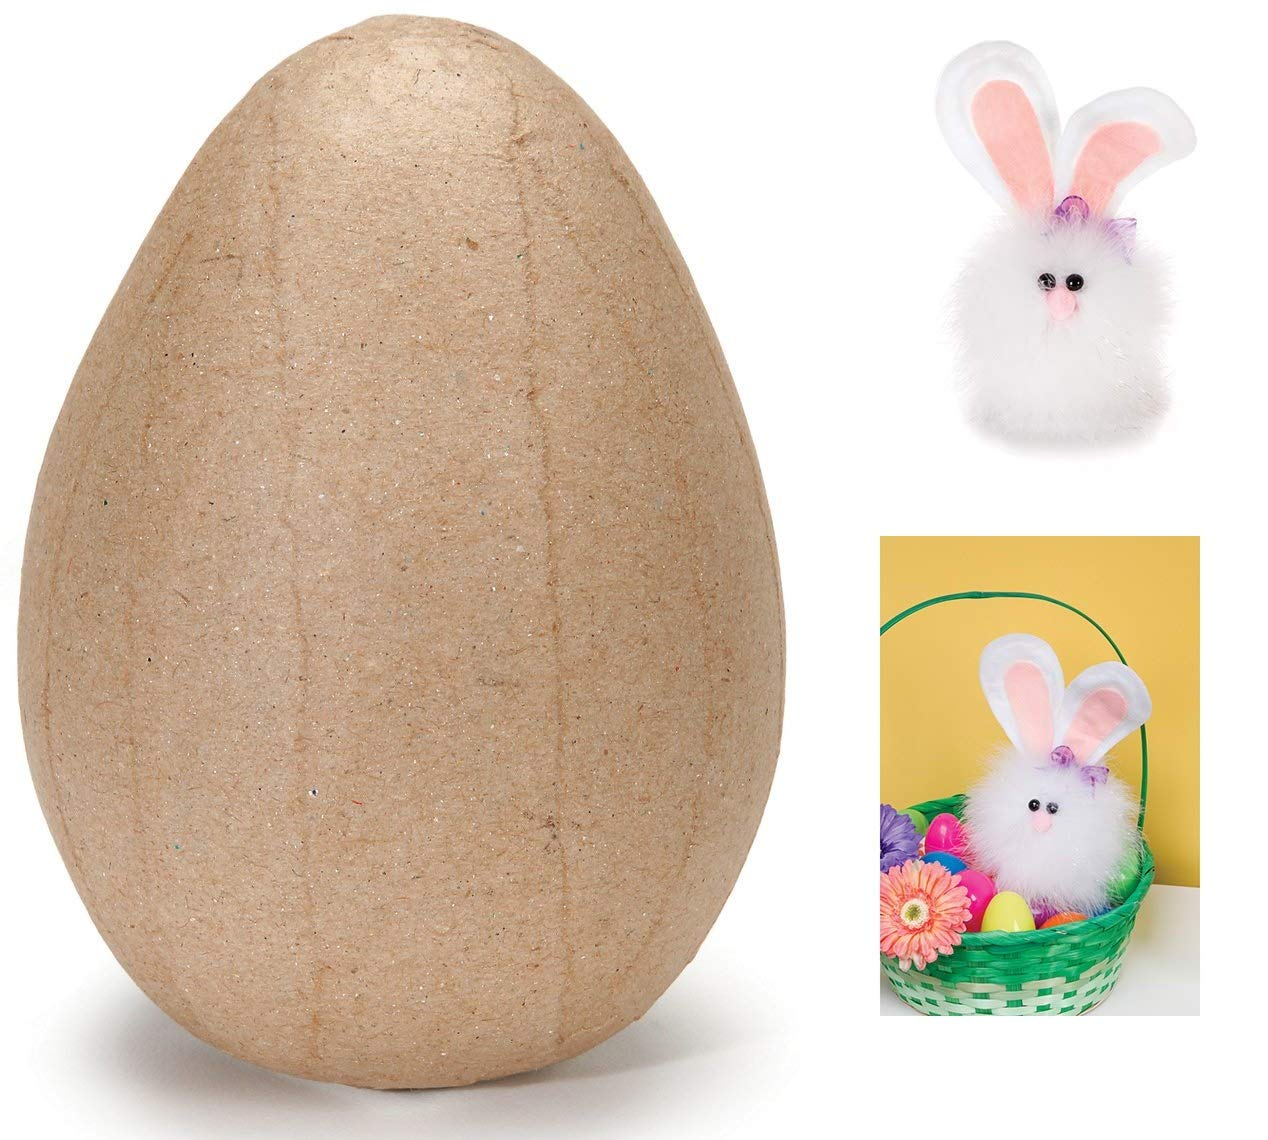 Color Your Own /& Decorate Gifting Ideas Creative DIY Craft 4 x 2.6 Paper Mache Easter Egg